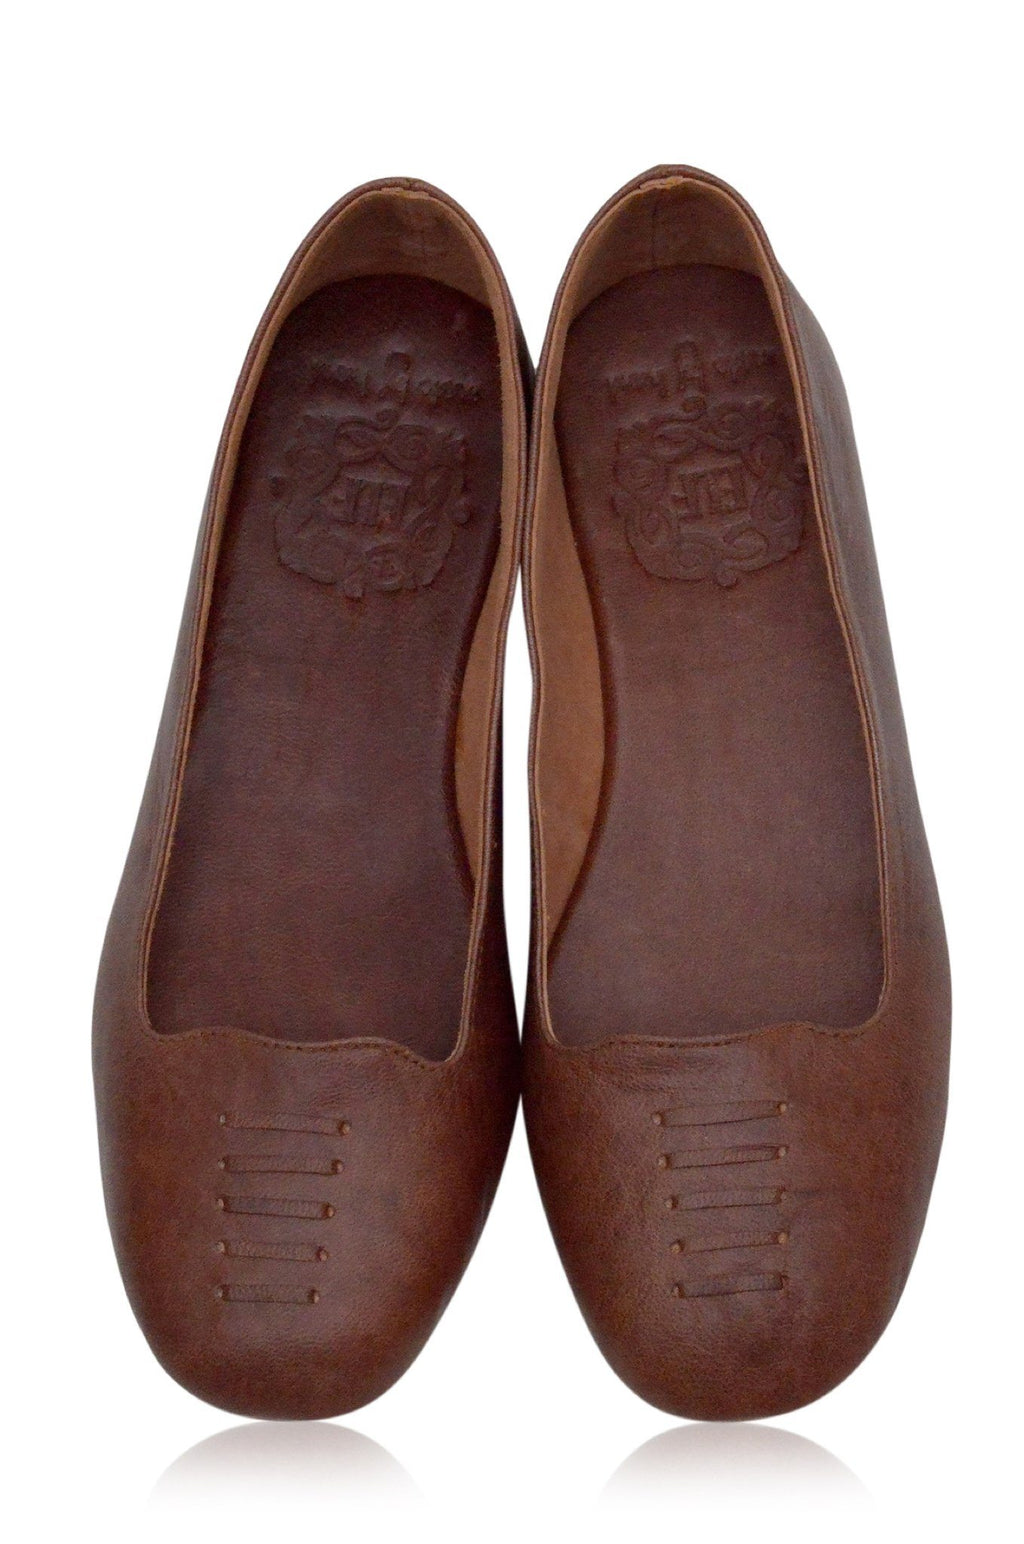 Leather Shoes - Luna Ballet Flats